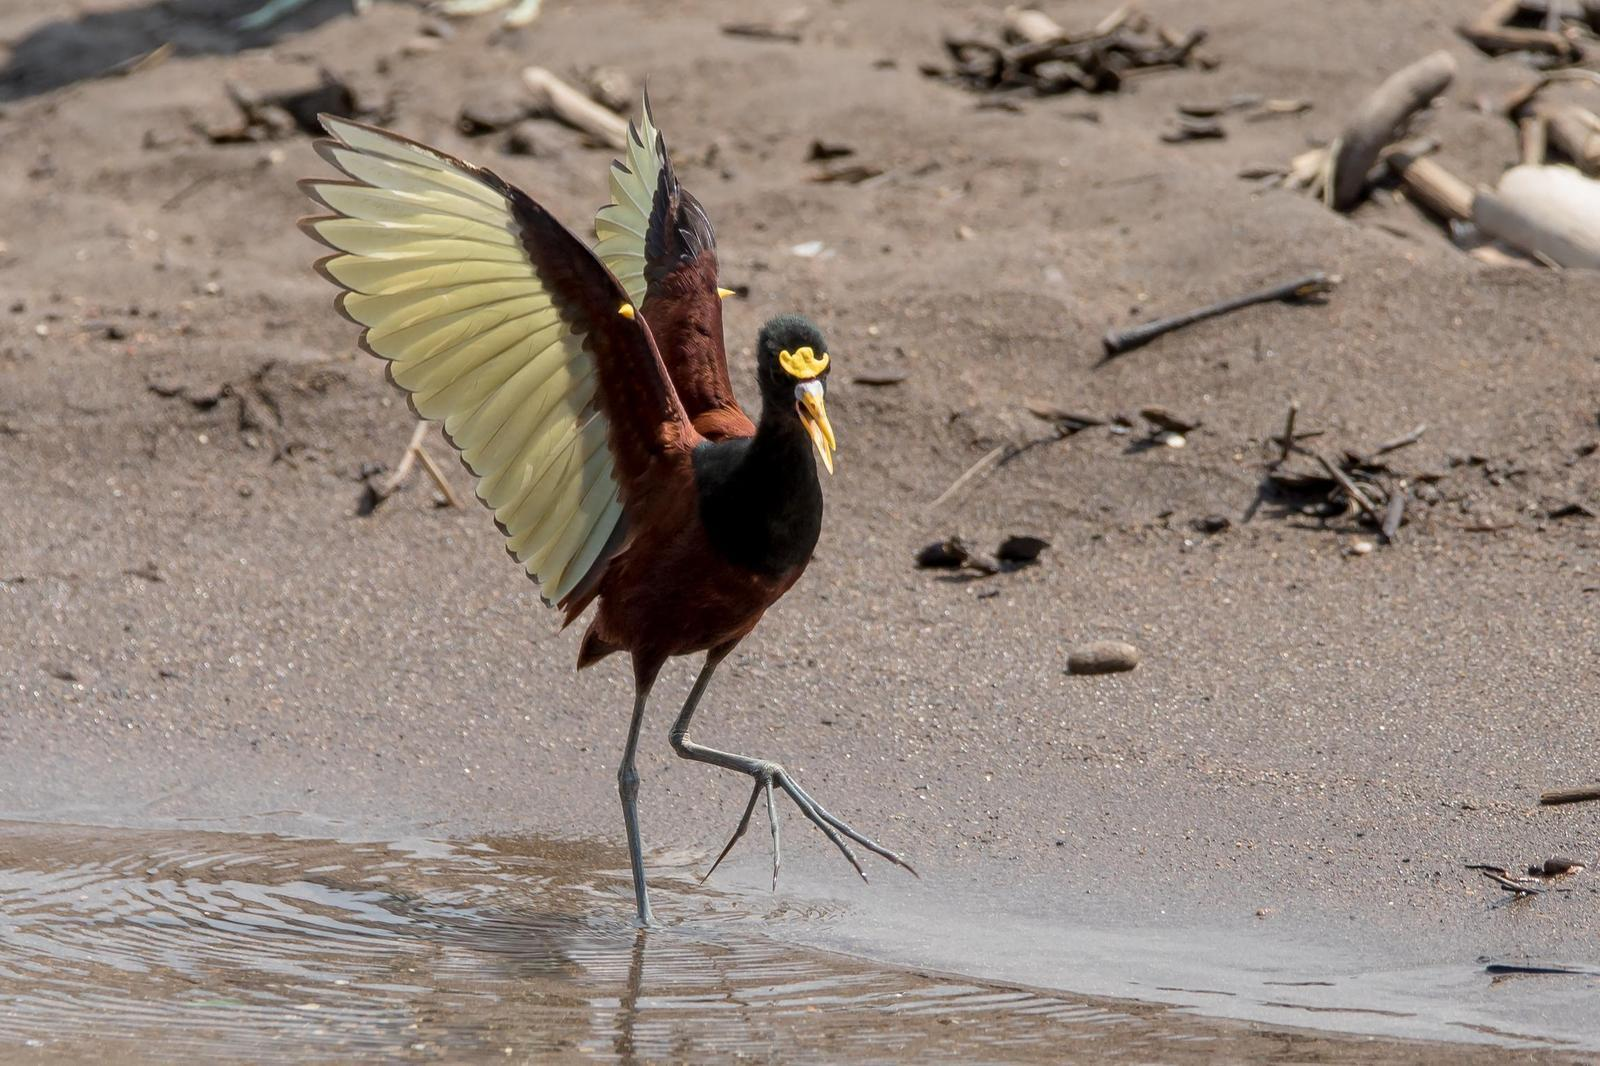 Northern Jacana Photo by Gerald Hoekstra